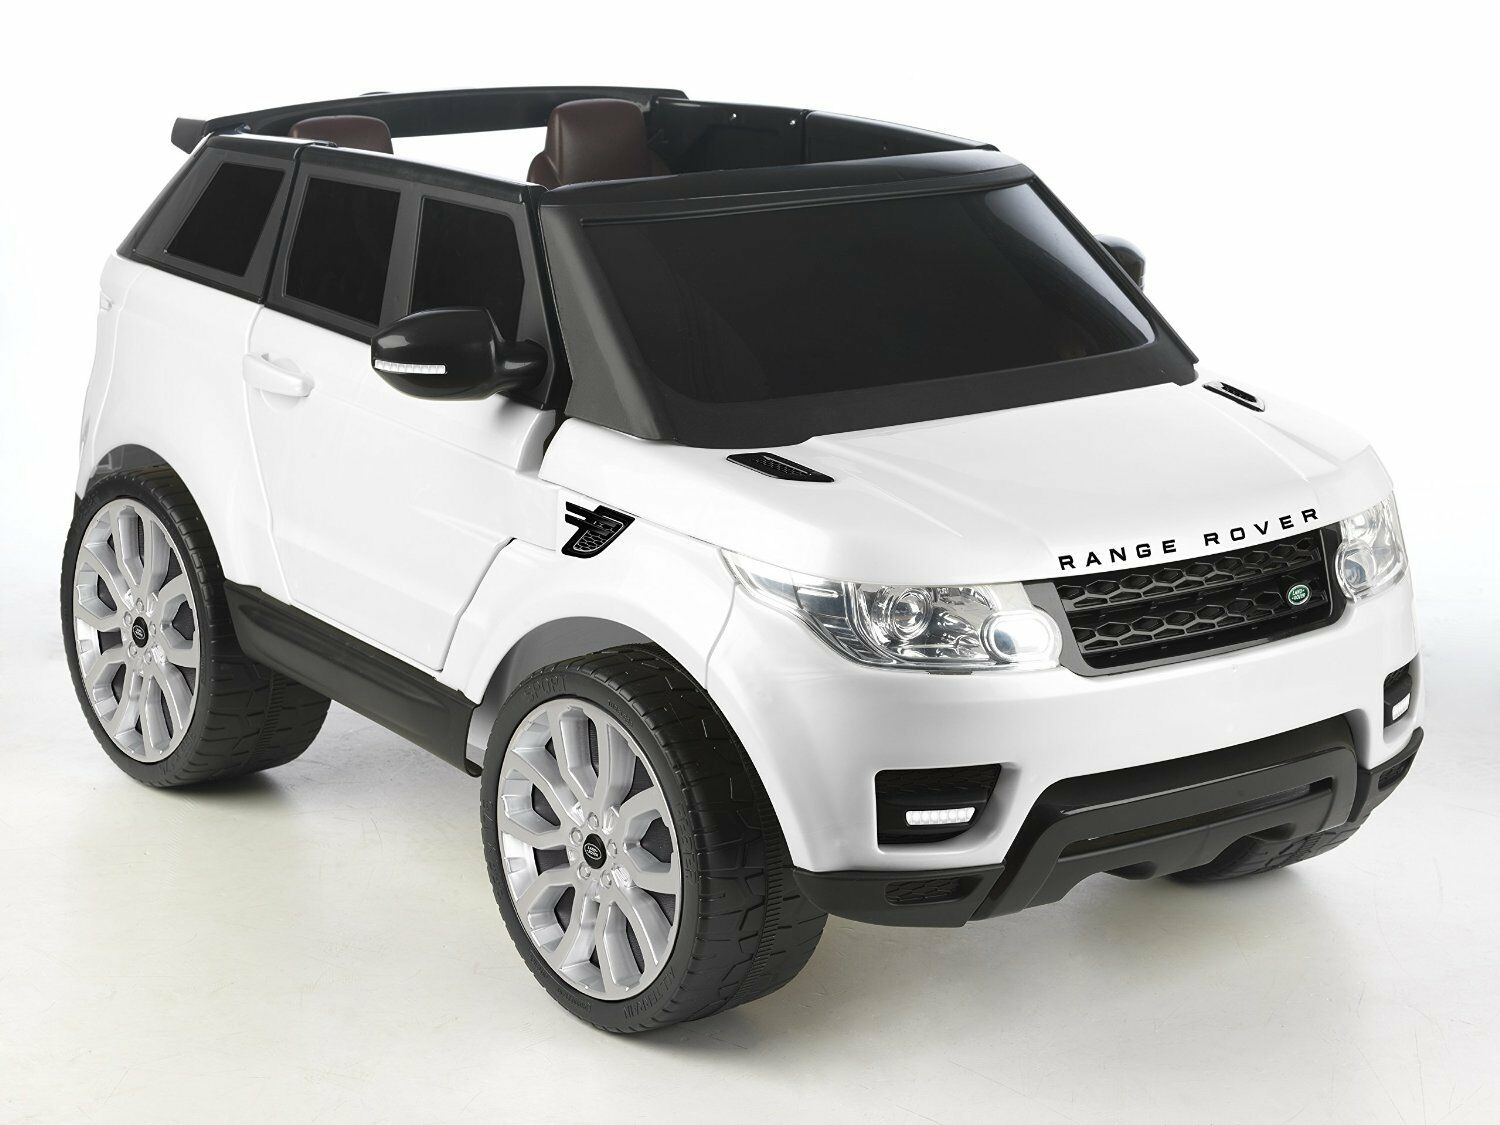 range rover sport due posti auto elettrica per bambini. Black Bedroom Furniture Sets. Home Design Ideas